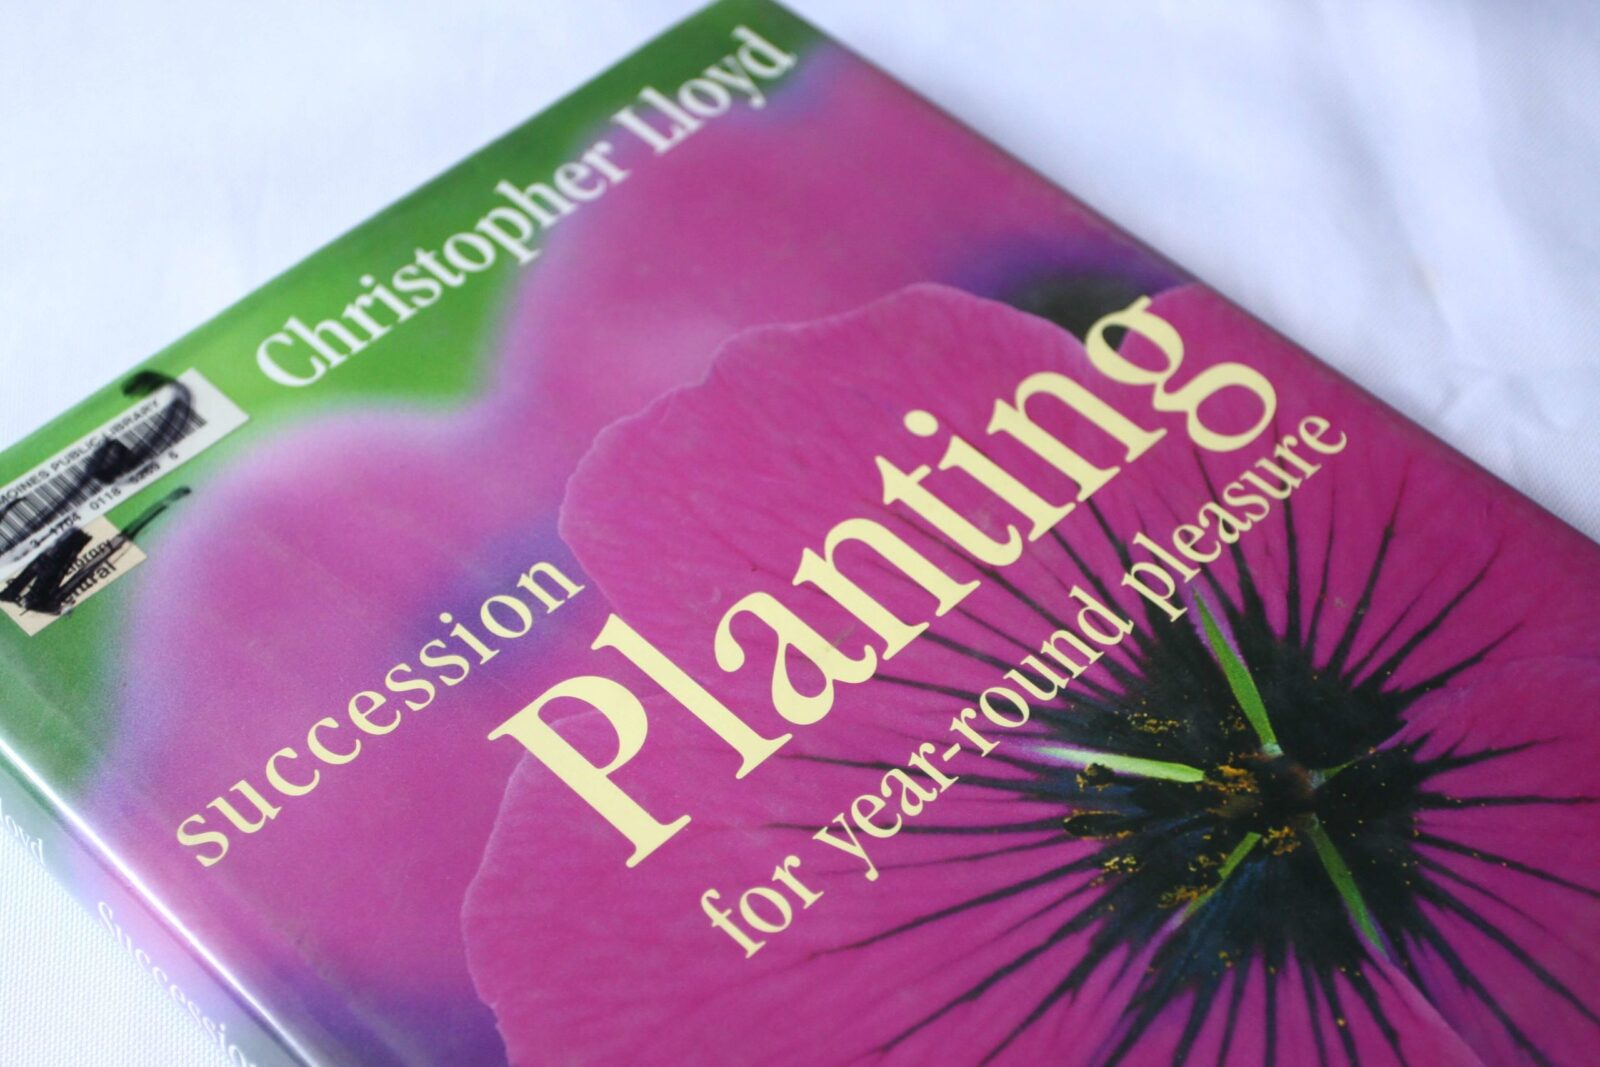 Christopher Lloyd Succesion Planting